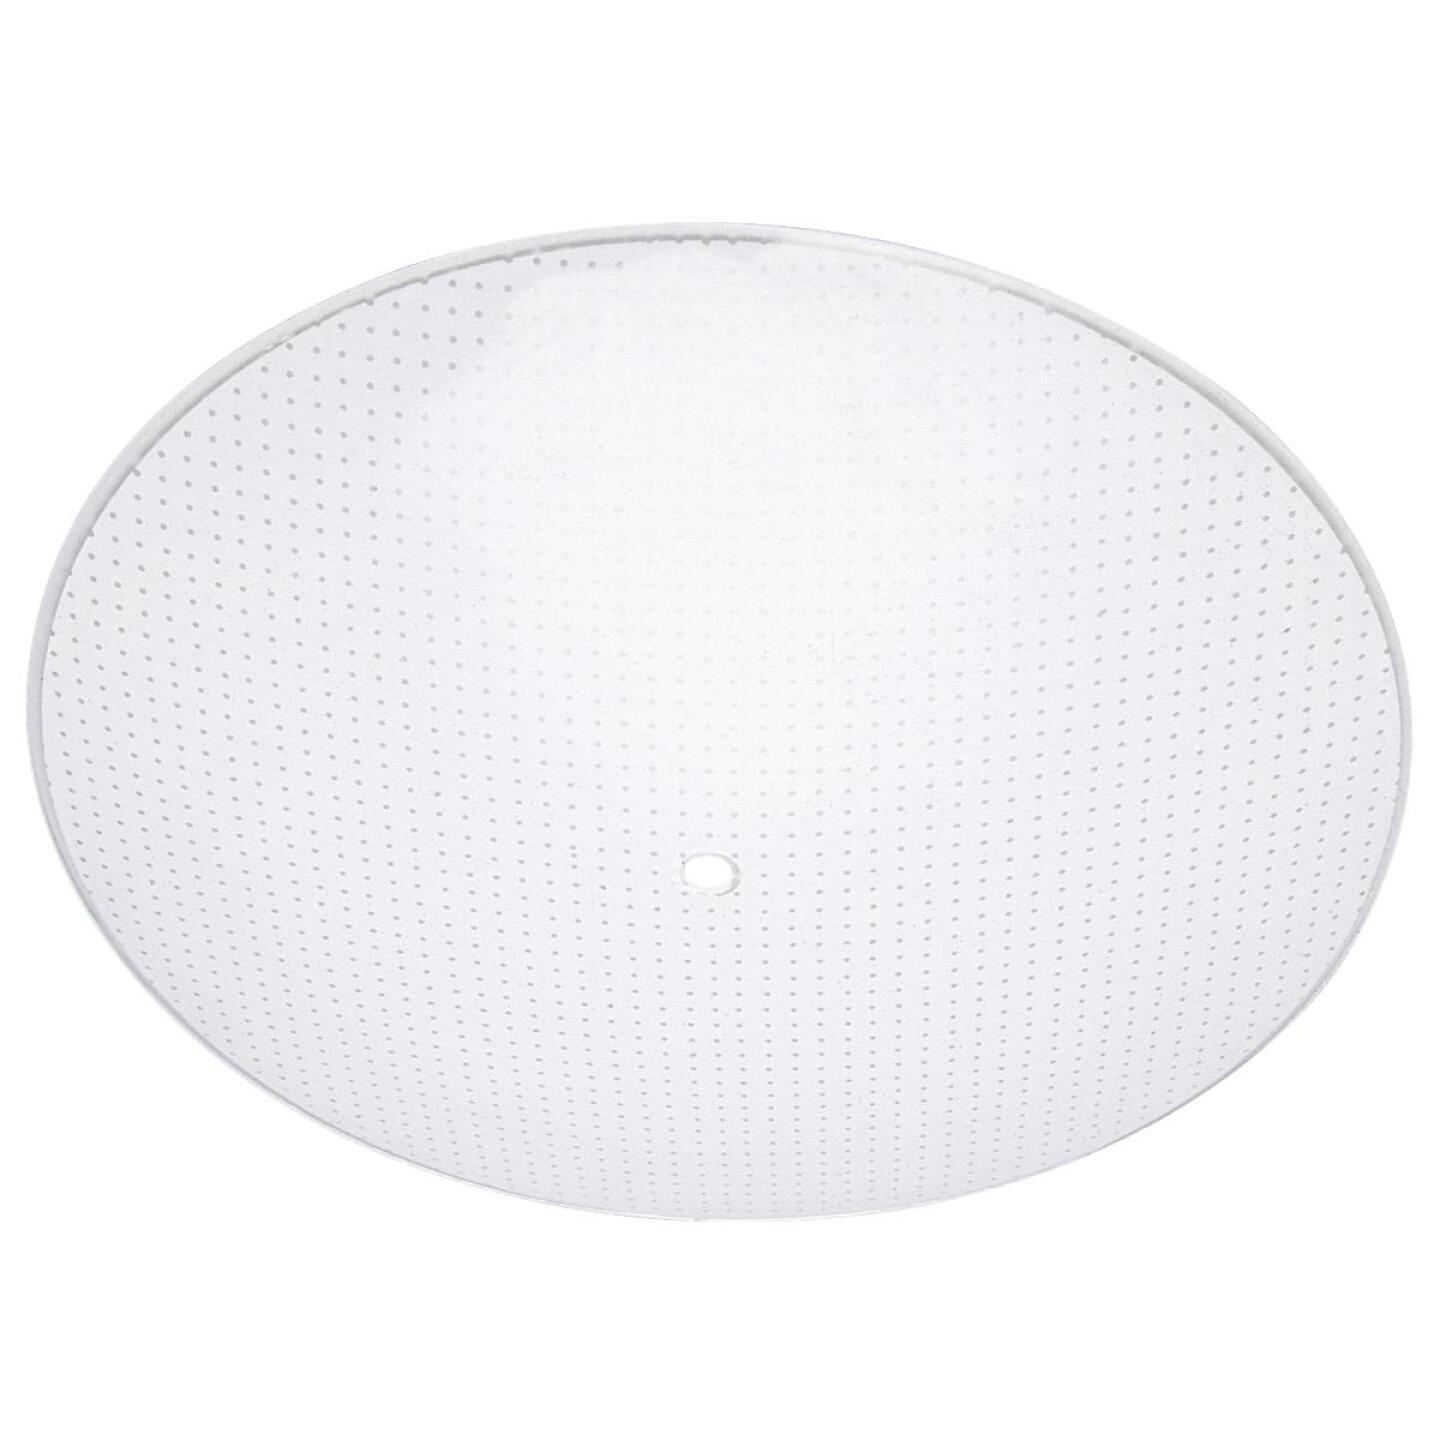 Westinghouse 15 In. Satin White Round Dot Pattern Ceiling Diffuser Image 1